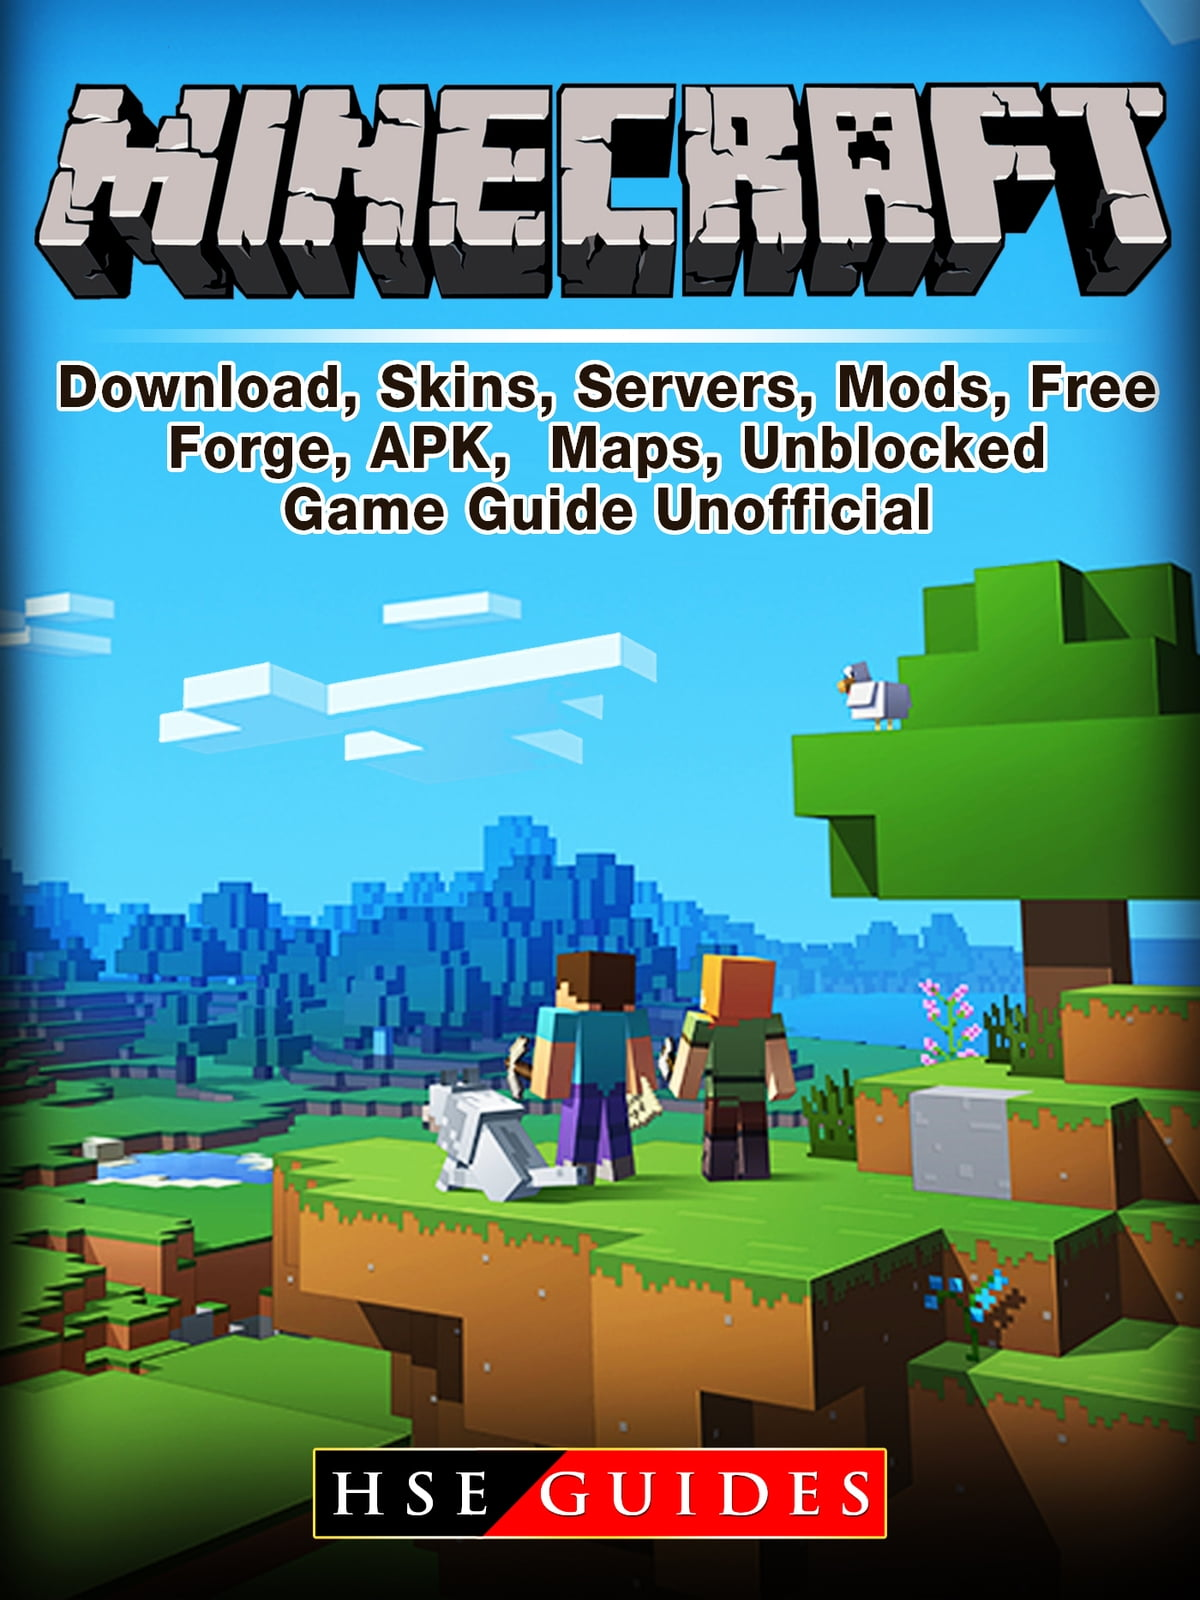 Minecraft Download Skins Servers Mods Free Forge Apk Maps Unblocked Game Guide Unofficial Ebook By Hse Guides 9781387524532 Rakuten Kobo Malaysia